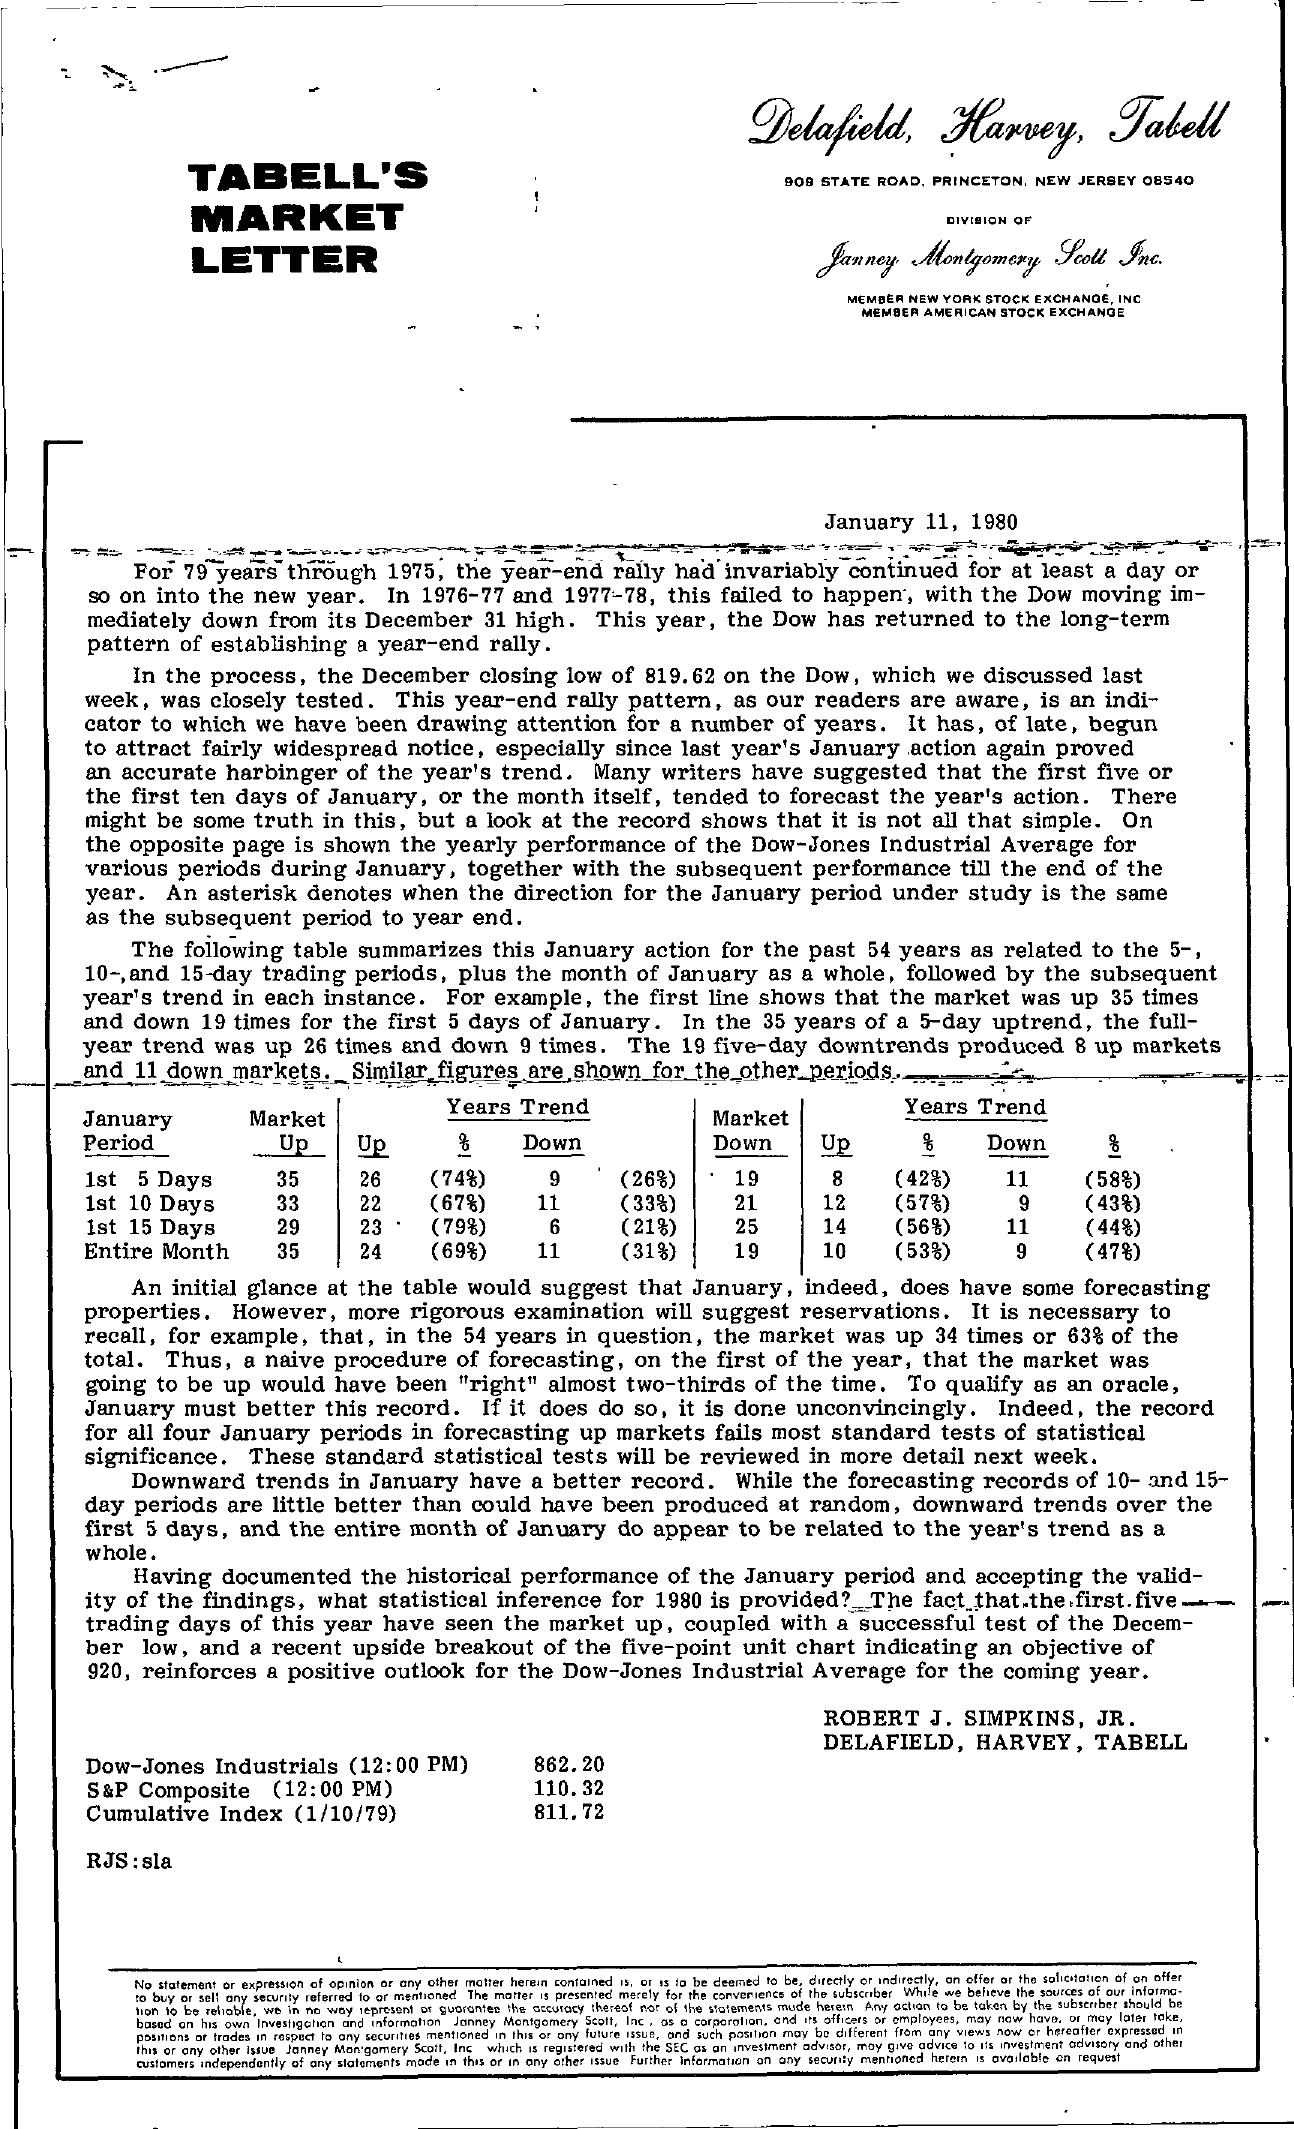 Tabell's Market Letter - January 11, 1980 page 1